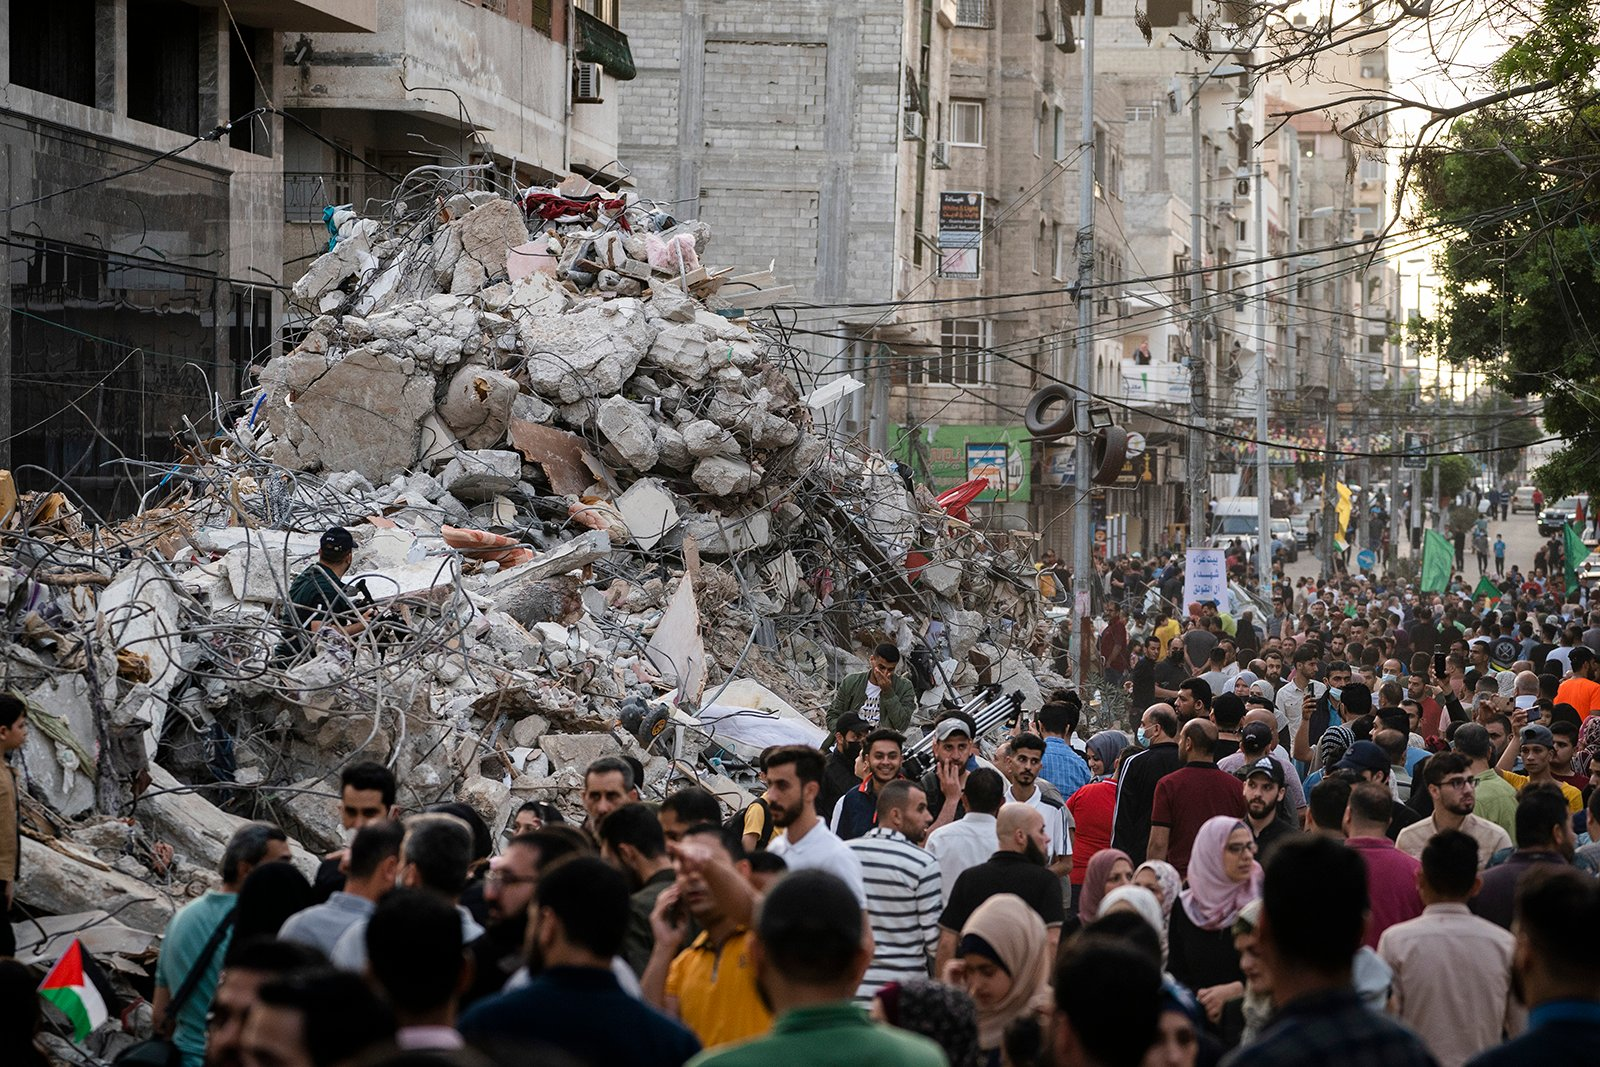 People pass a rubble heap beside a building previously destroyed by an Israeli airstrike, following a cease-fire reached after an 11-day war between Gaza's Hamas rulers and Israel, in Gaza City, Friday, May 21, 2021. (AP Photo/John Minchillo)